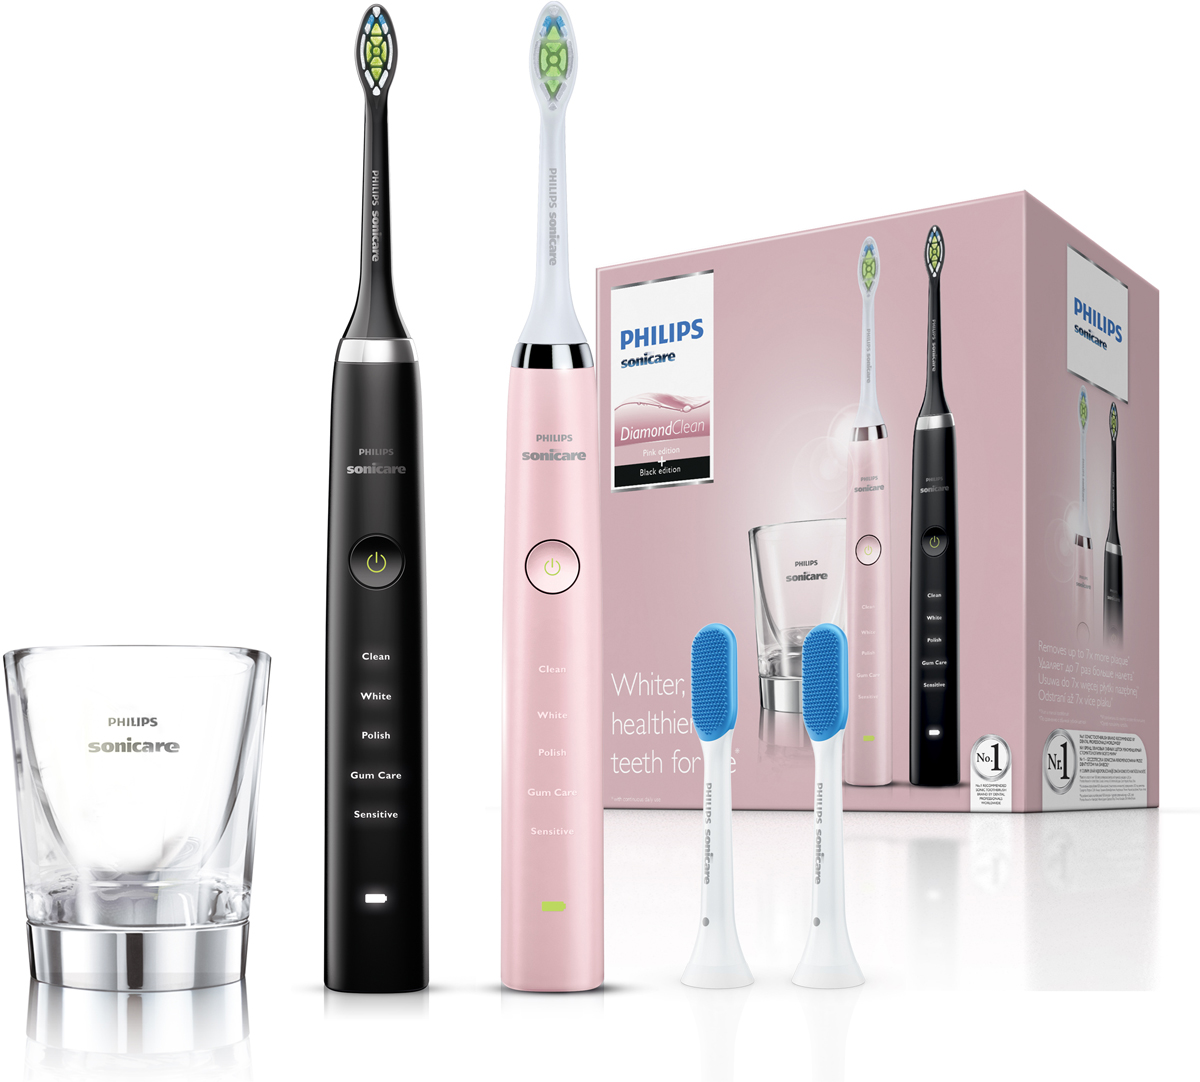 Philips HX9368/35, Black Pink набор электрических зубных щеток, 2 шт glass cup for charger hx9100 sonicare diamondclean toothbrush hx9340 hx9342 hx9313 hx9333 hx9362 hx9382 hx9302 hx9350 6530 6930